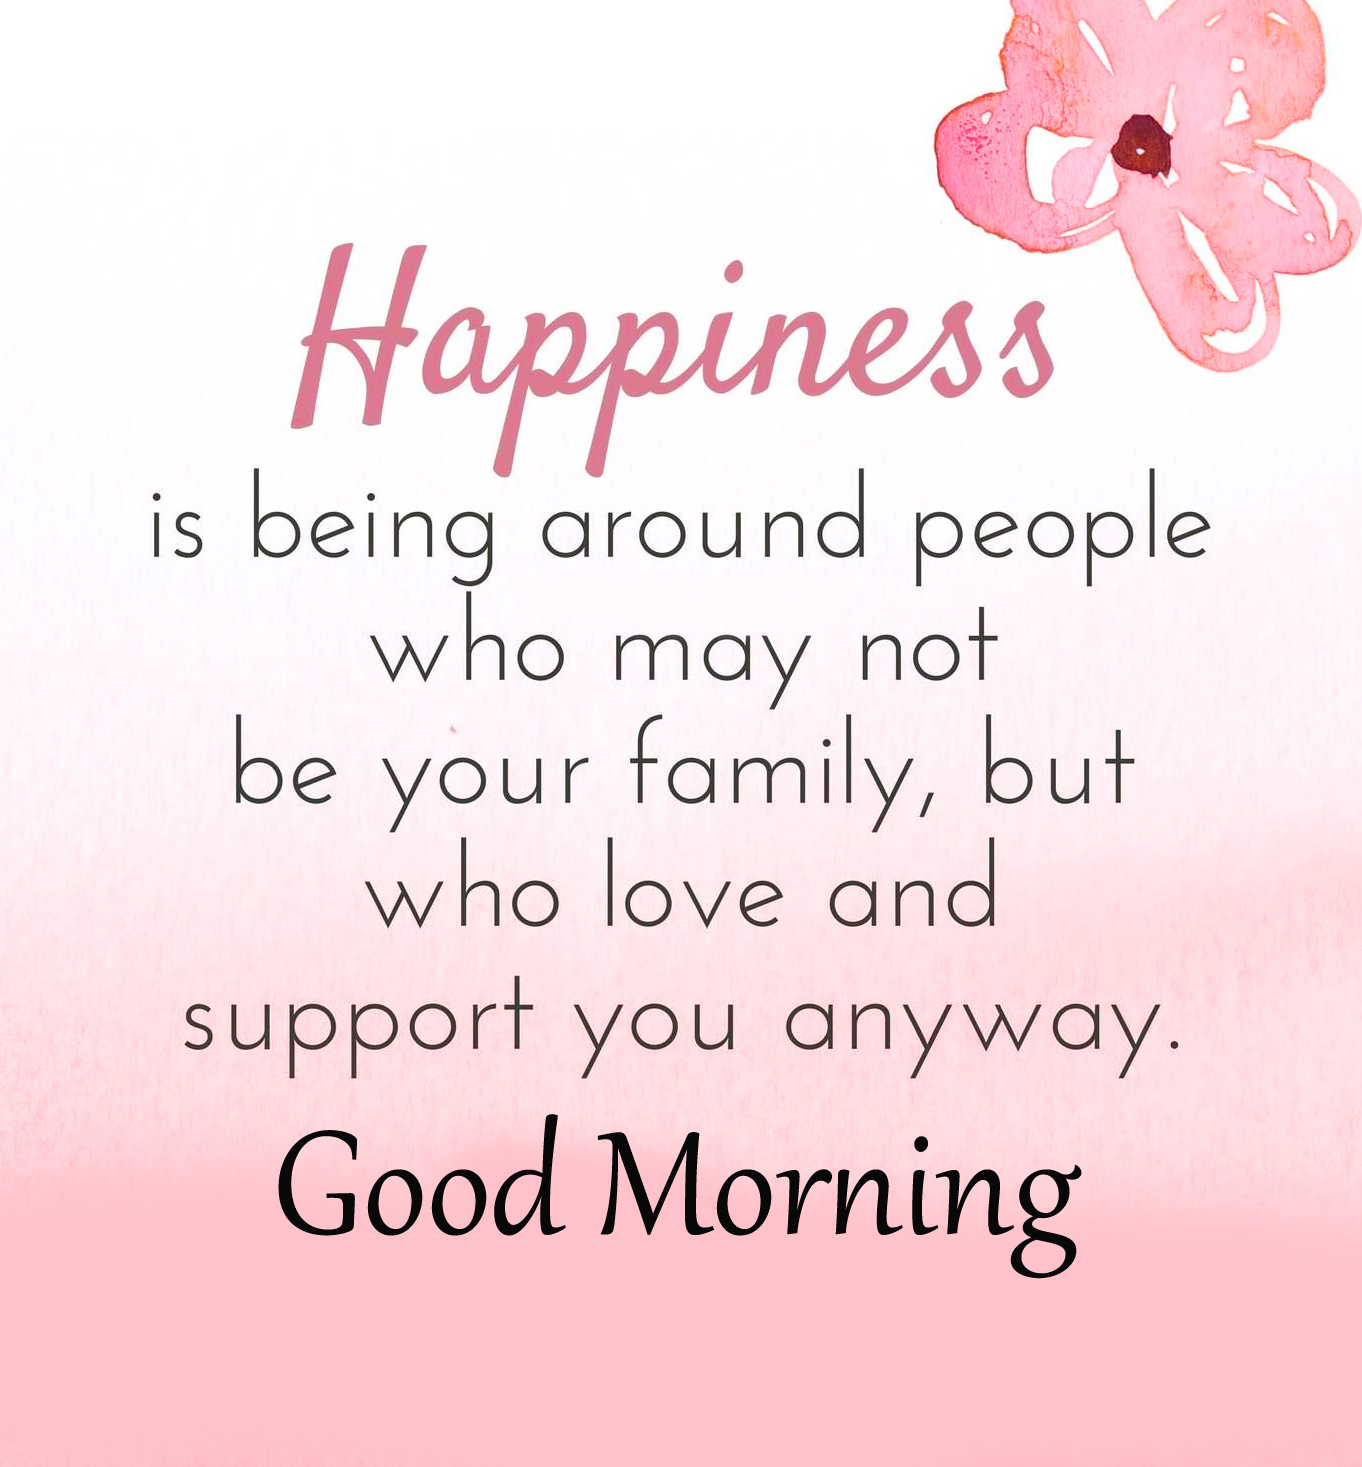 Adorable Good Morning Quote Image